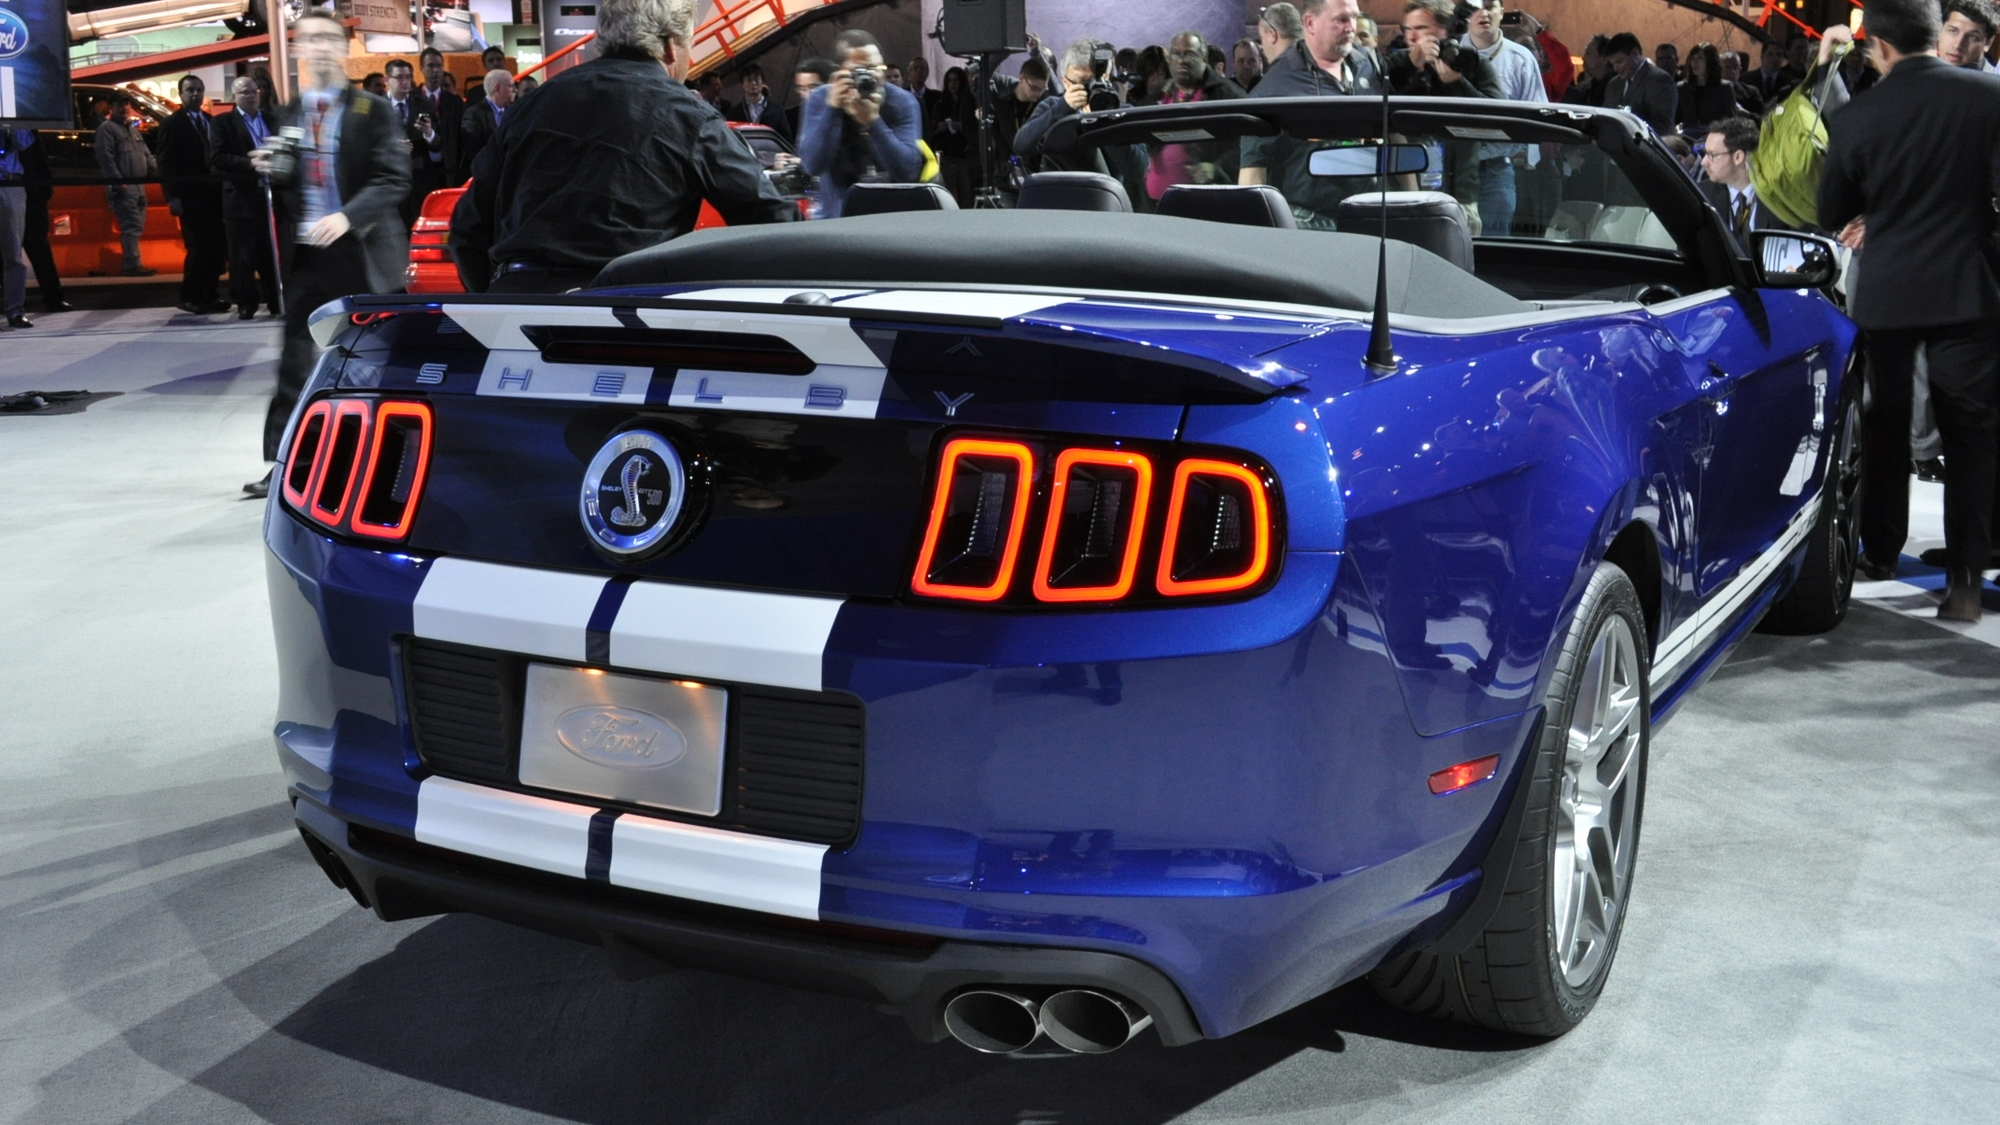 Ford Mustang Gt500 Shelby 2013 Occasion